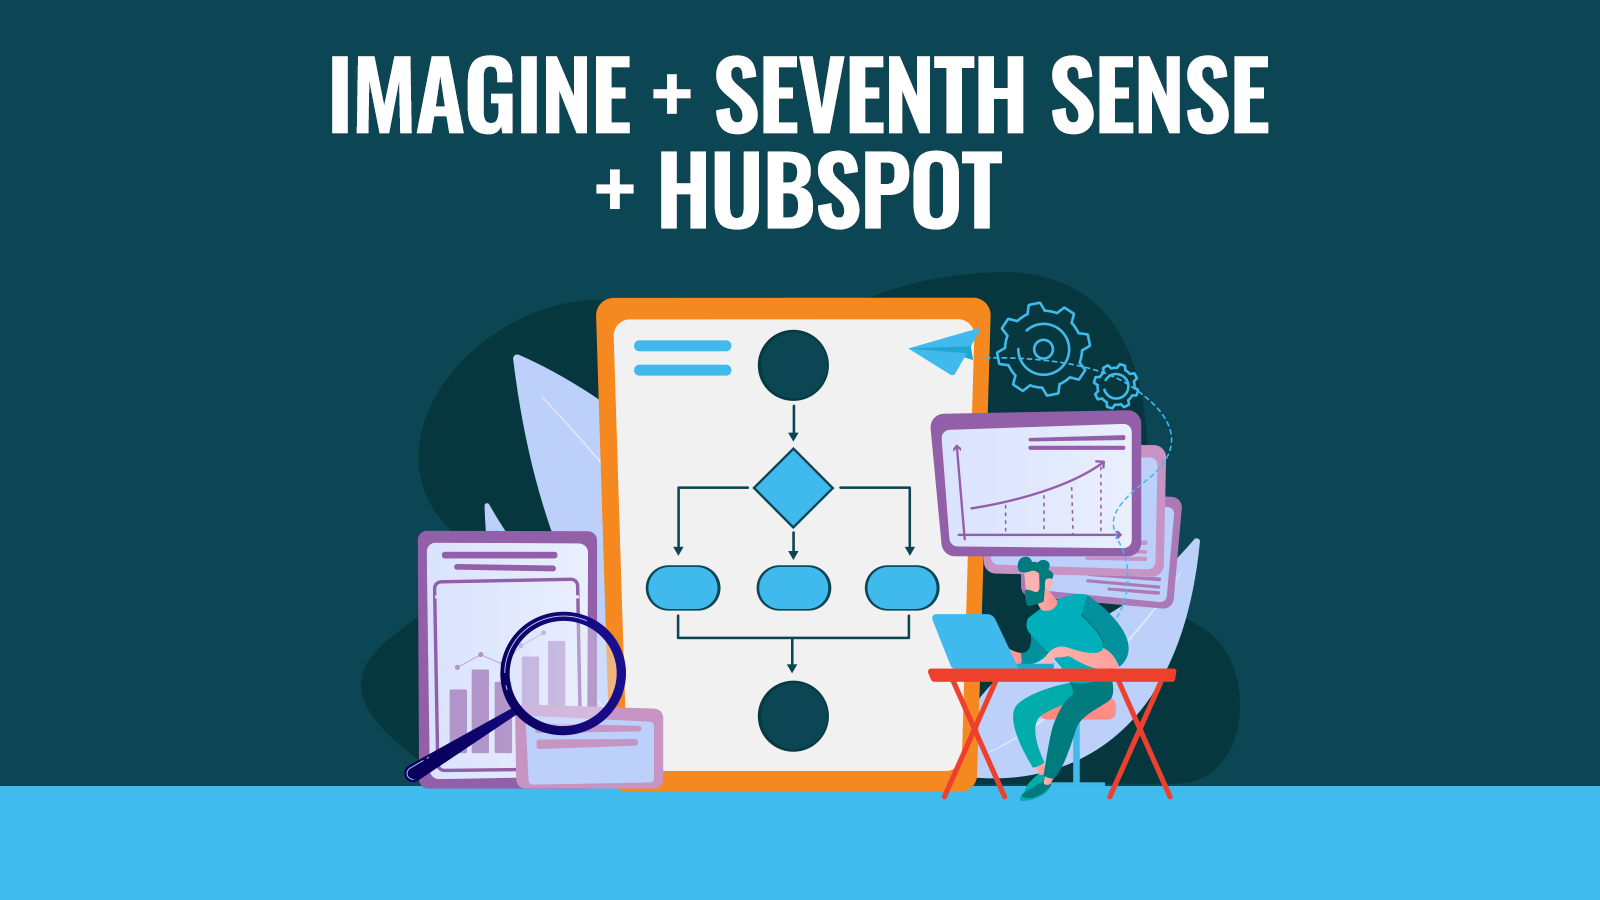 Imagine+SeventhSense+HubSpot